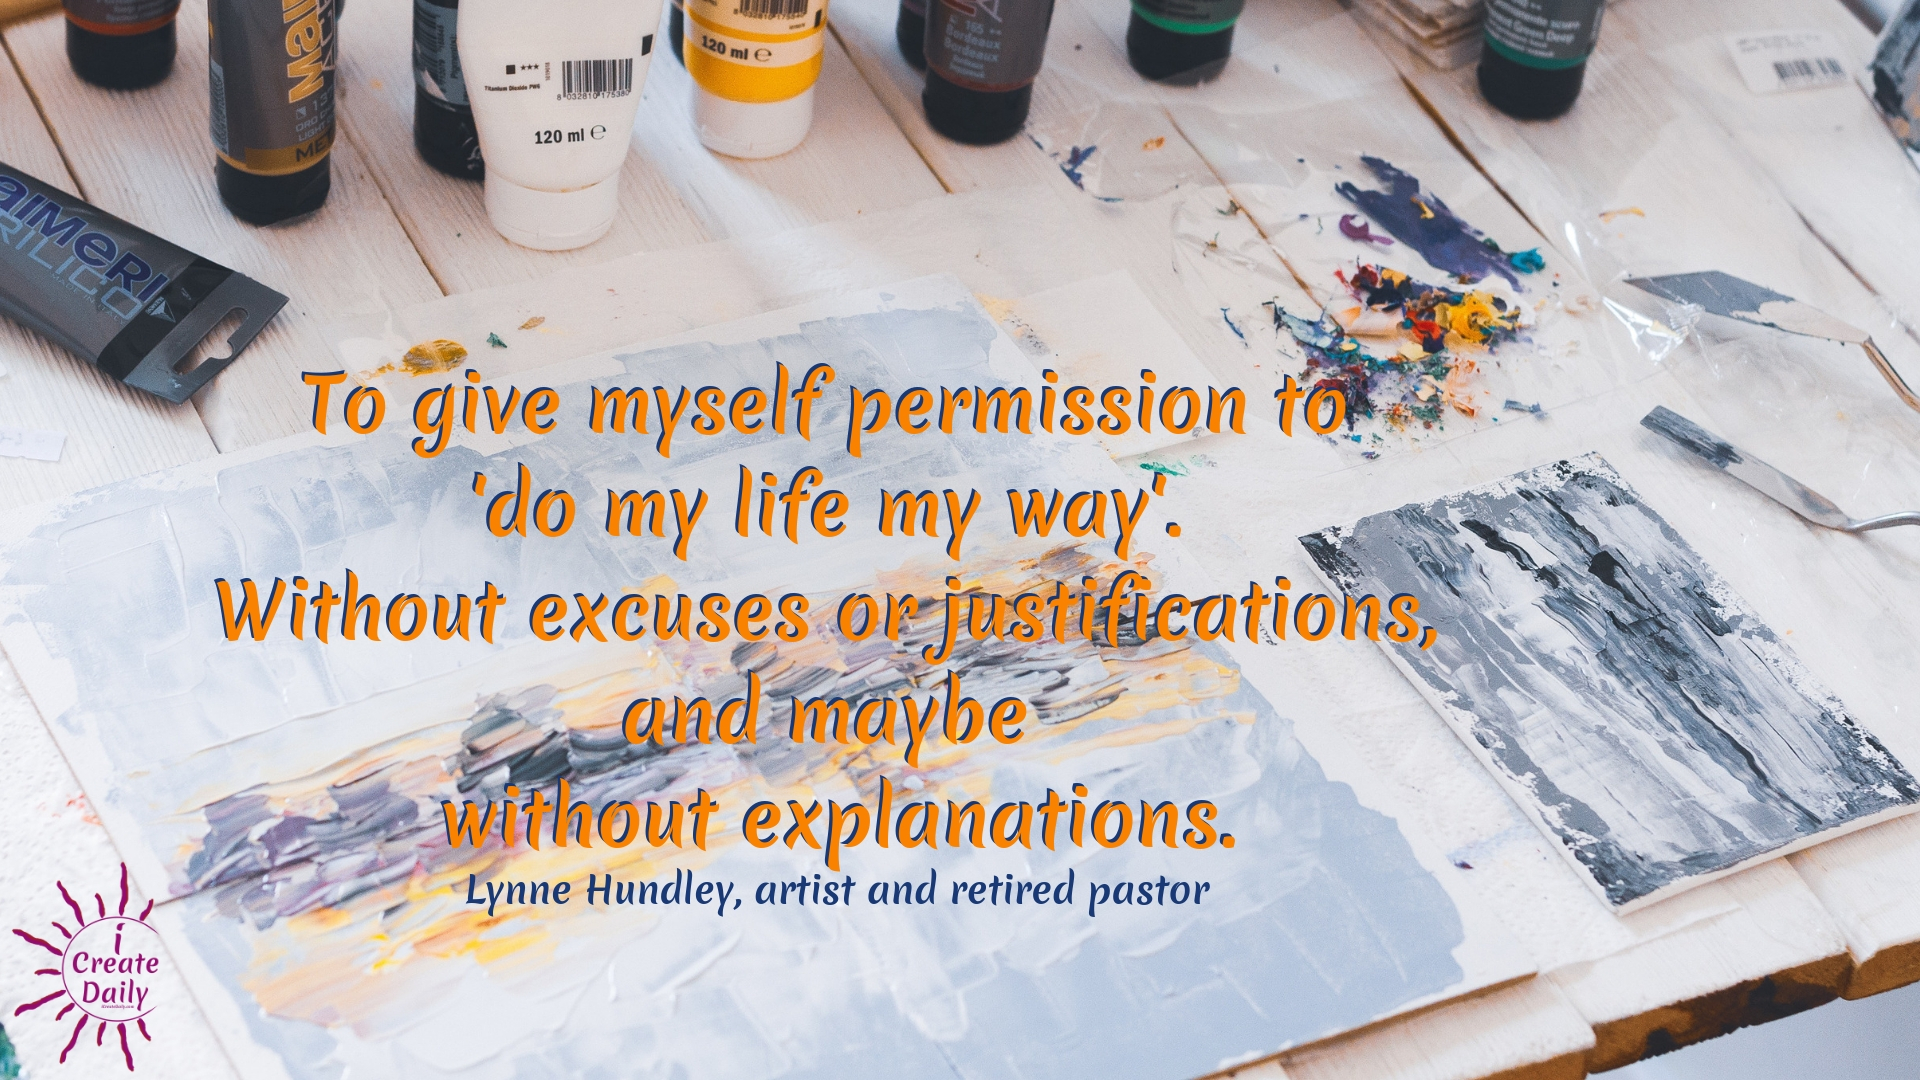 """""""To give myself permission to 'do my life my way'. Without excuses or justifications, and maybe without explanations.""""~Lynne Hundley, artist and retired pastor.#Relationship #Life #Quotes #Fitness #List #Setting #Personal #Future #BulletJournal #Body #Career #Couple #Travel #Summer #Monthly #BestFriend #House #Ideas #Family #Money #Smart #School #Health #Daily #Board #Weekly #Friendship #NewYear #Financial"""